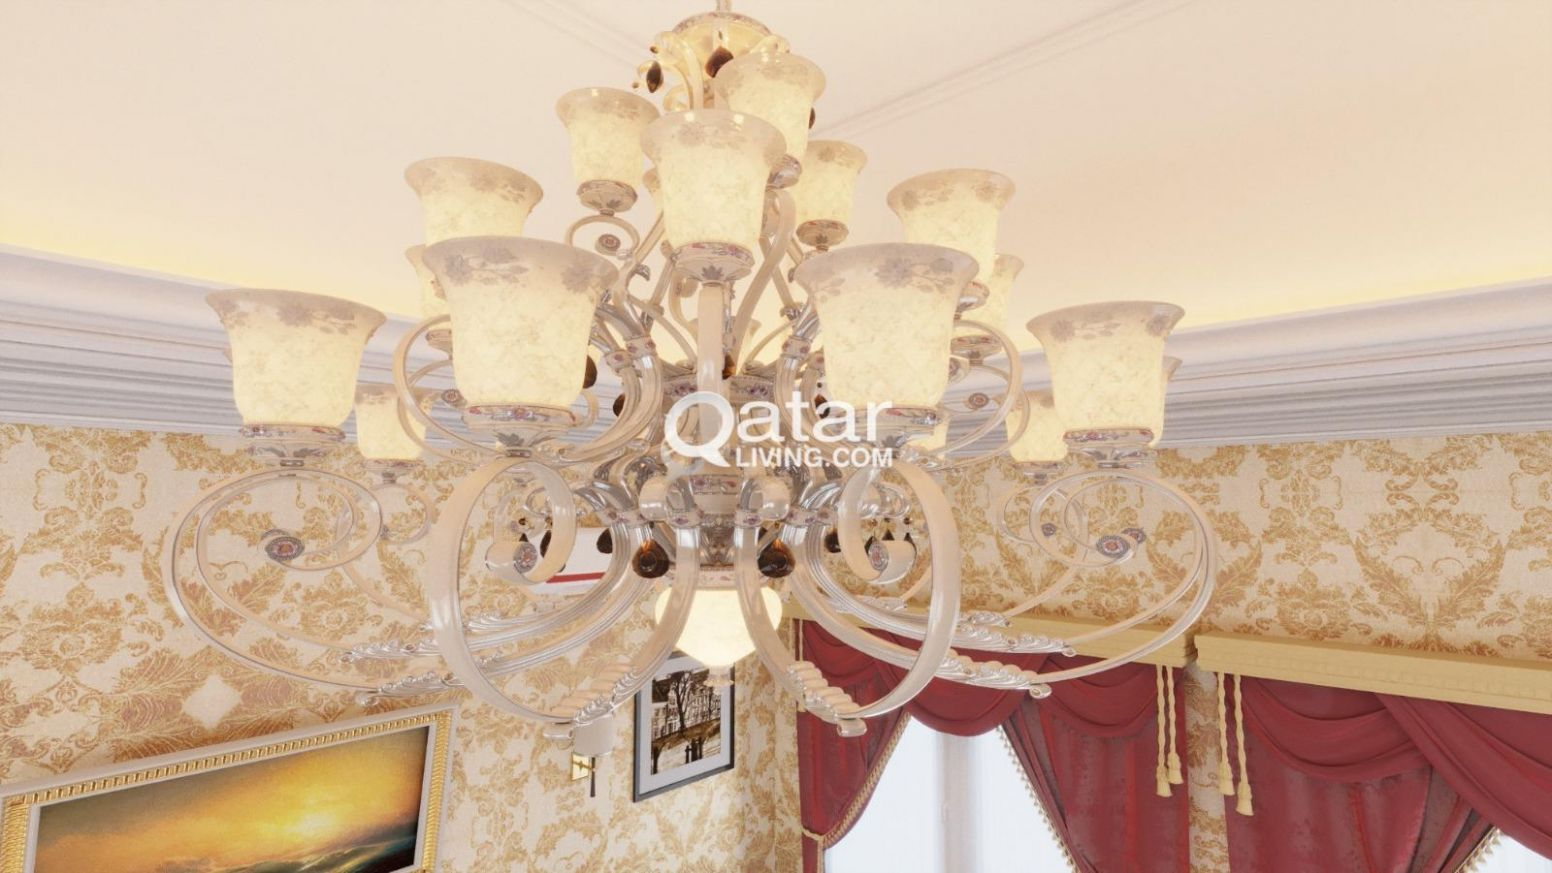 Home Decor in Doha | Qatar Living